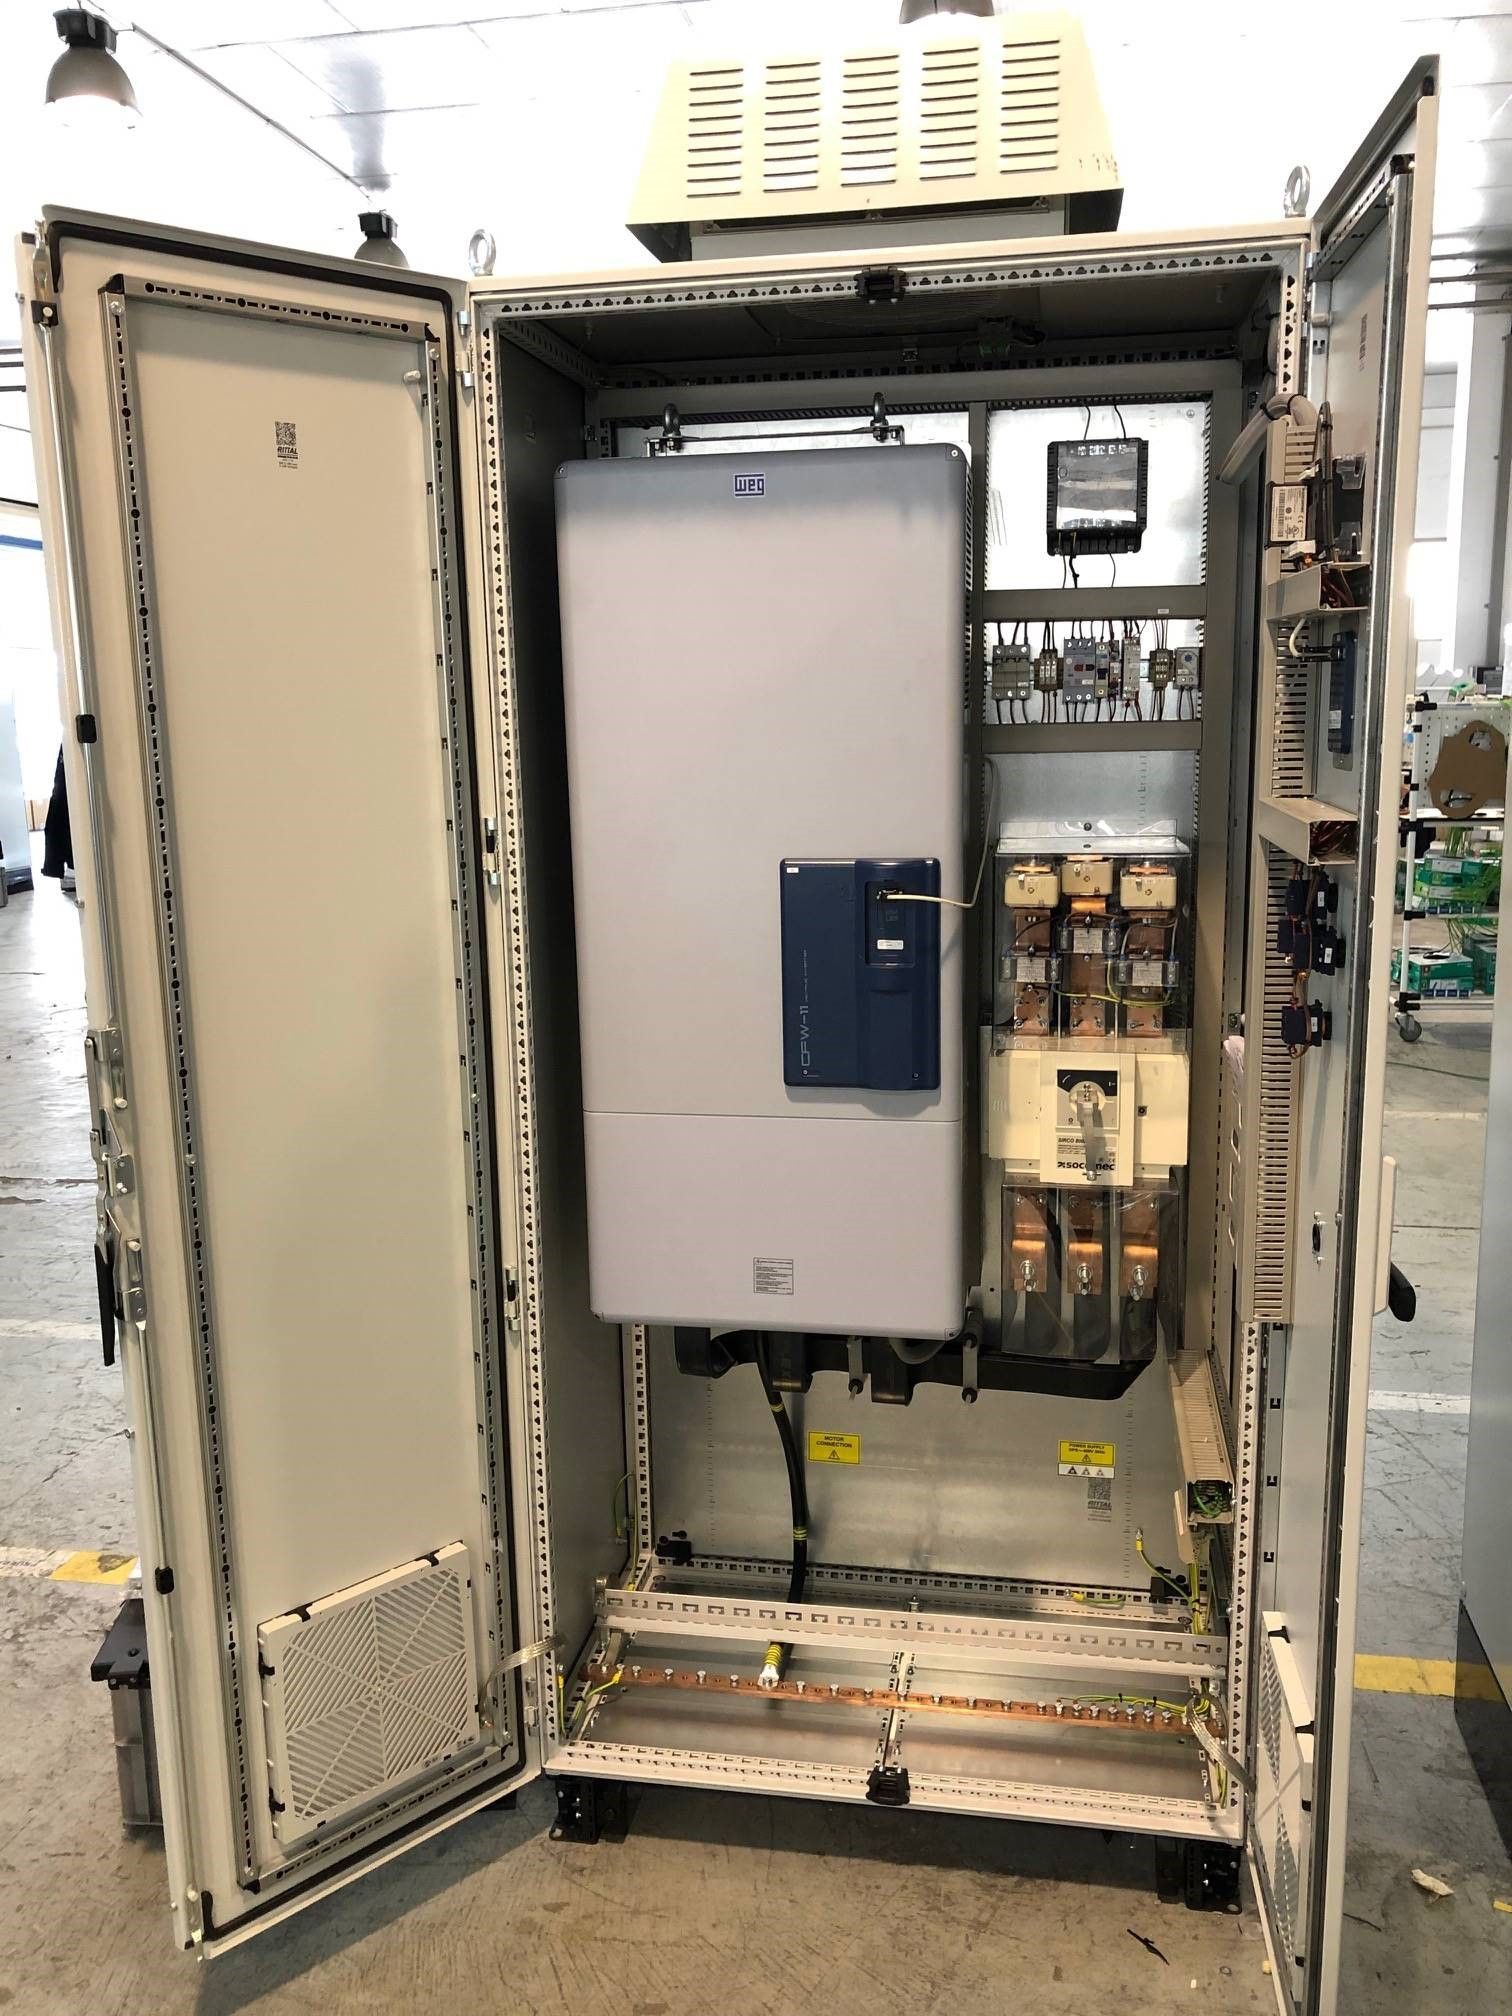 Picture WEG AUTRIAL SUPPLIES VFD PANEL FOR A GAS COMPRESSOR APPLICATION LOCATED IN BELGIUM